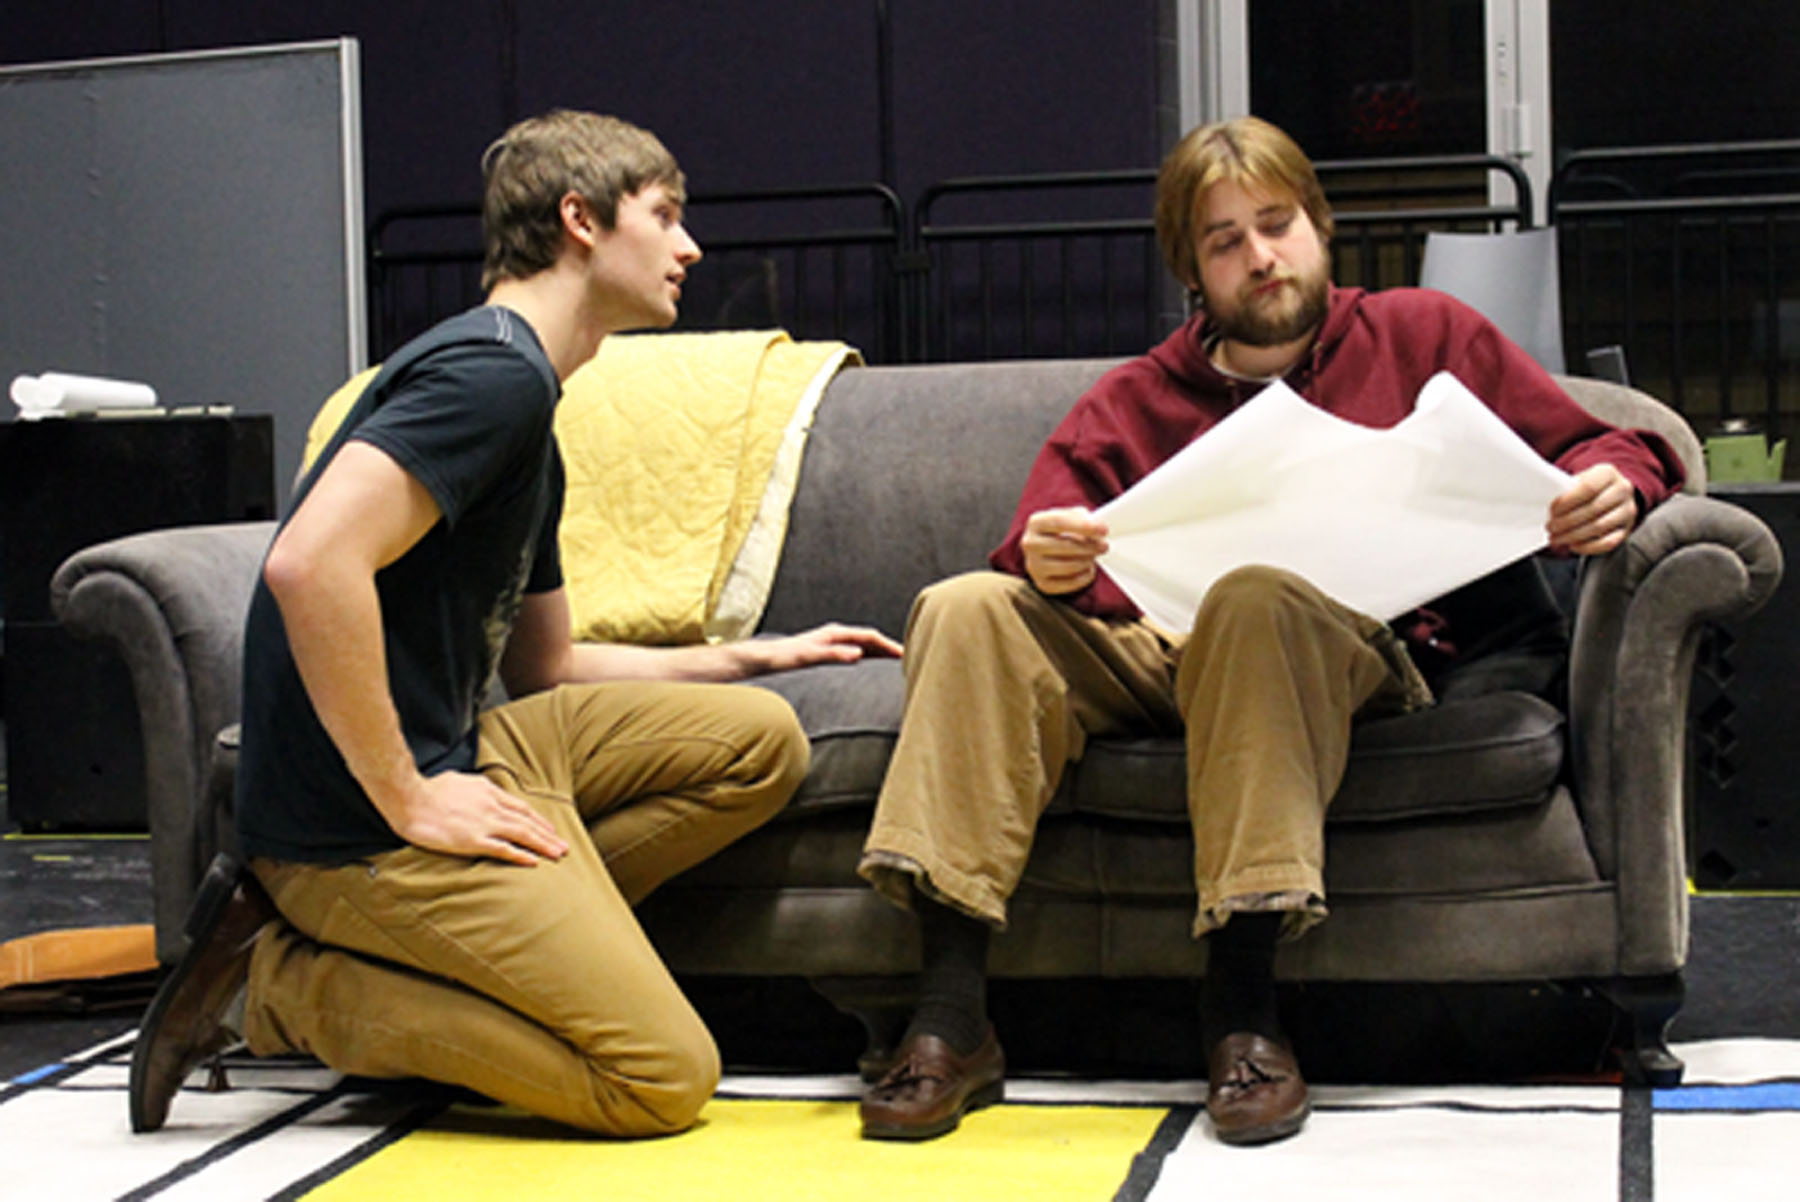 Virginia Tech theatre students rehearse a scene